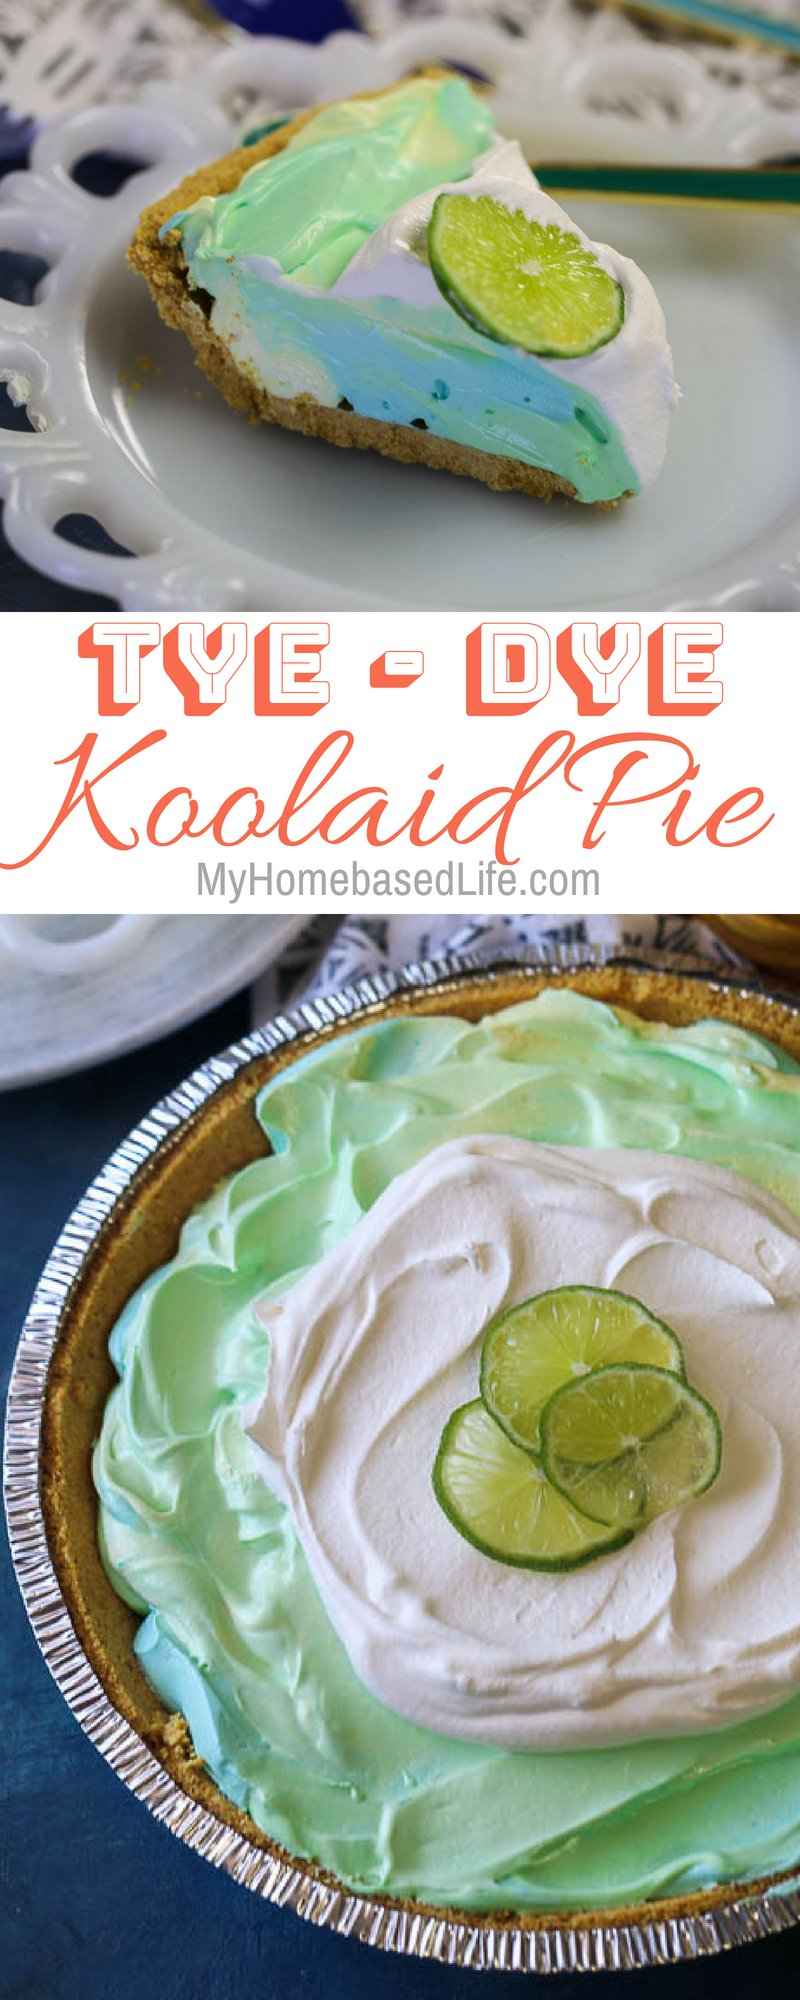 The perfect summer recipe for picnics or for just enjoying as a family. This Tye-Dye KoolAid Pie works great with Easter and Earth Day as well! #koolaidpie #pierecipe #dessert #tasty #myhomebasedlife   Pie Recipes   Dessert Recipes   Summer Recipes   Earth Day Recipe   Easter Dessert  